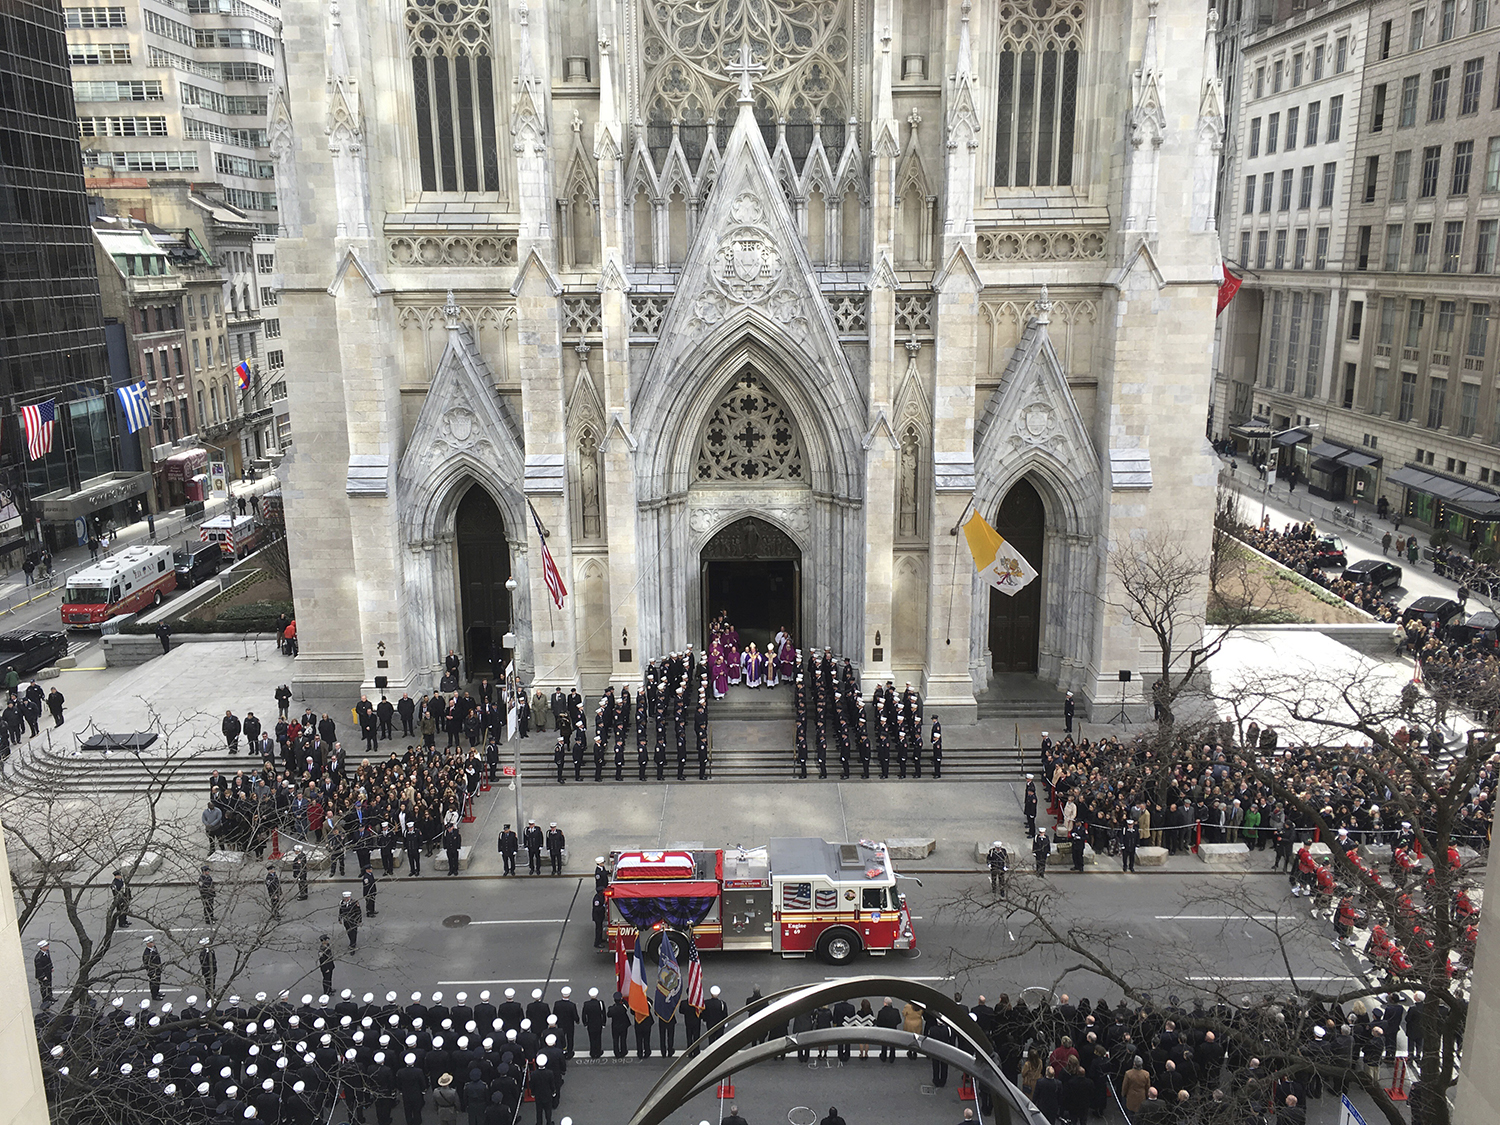 <div class='meta'><div class='origin-logo' data-origin='AP'></div><span class='caption-text' data-credit='Richard Drew'>A firetruck arrives at New York's St. Patrick's Cathedral bearing the body of Lt. Michael Davidson as mourners gathered.</span></div>